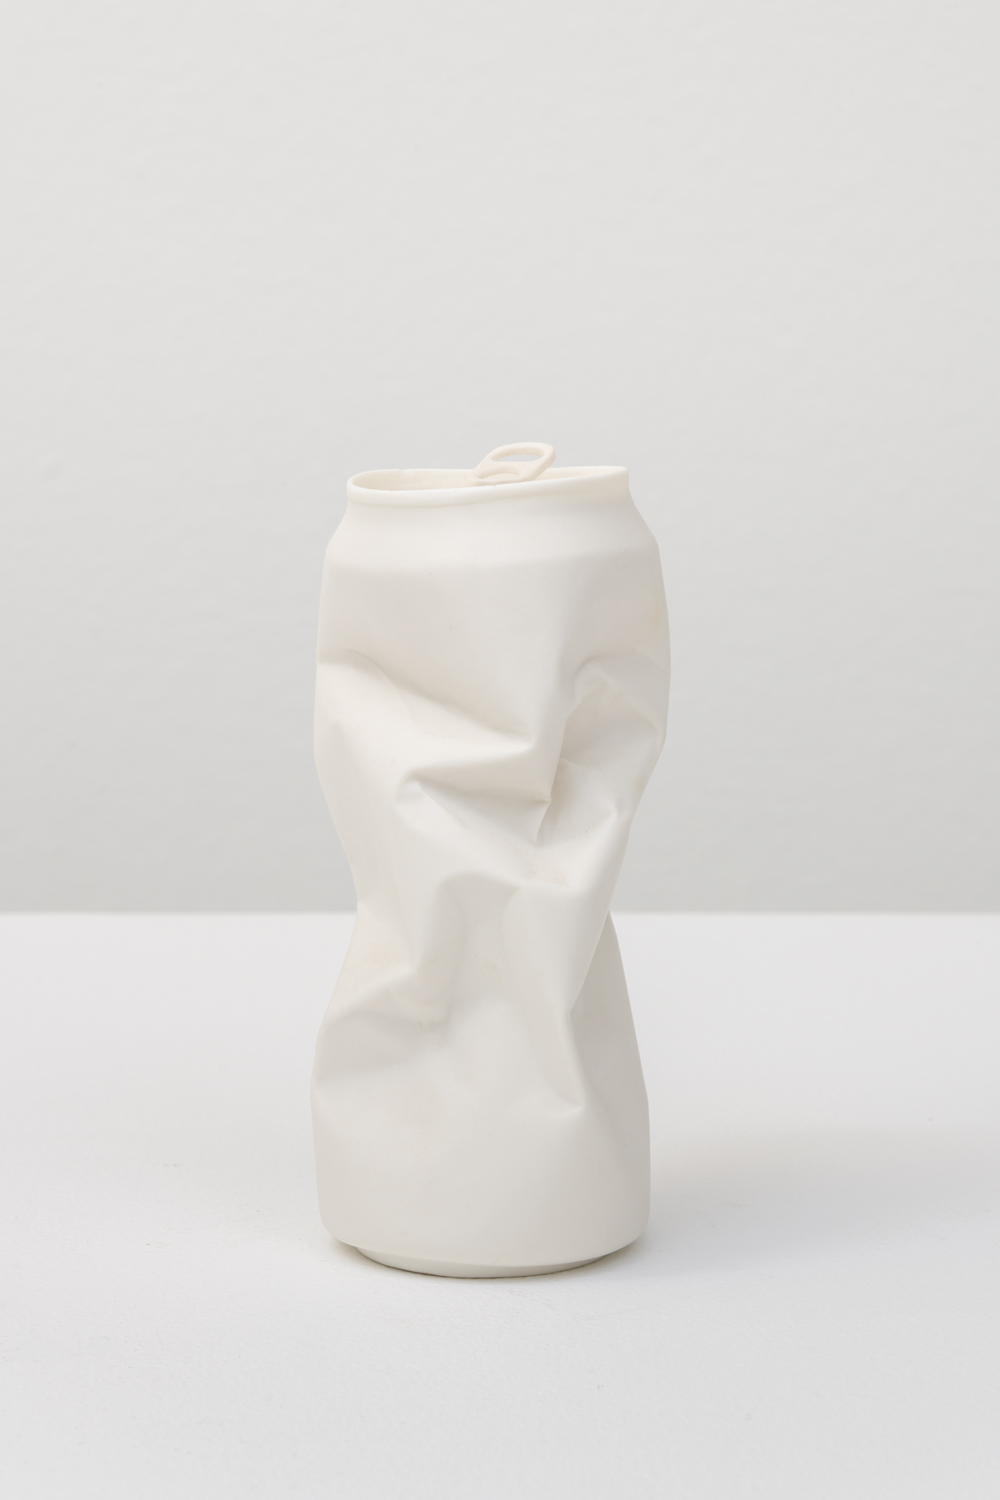 Garret Dran  Untitled, 2015  Vitrified translucent porcelain  6 x 3 x 3 inches